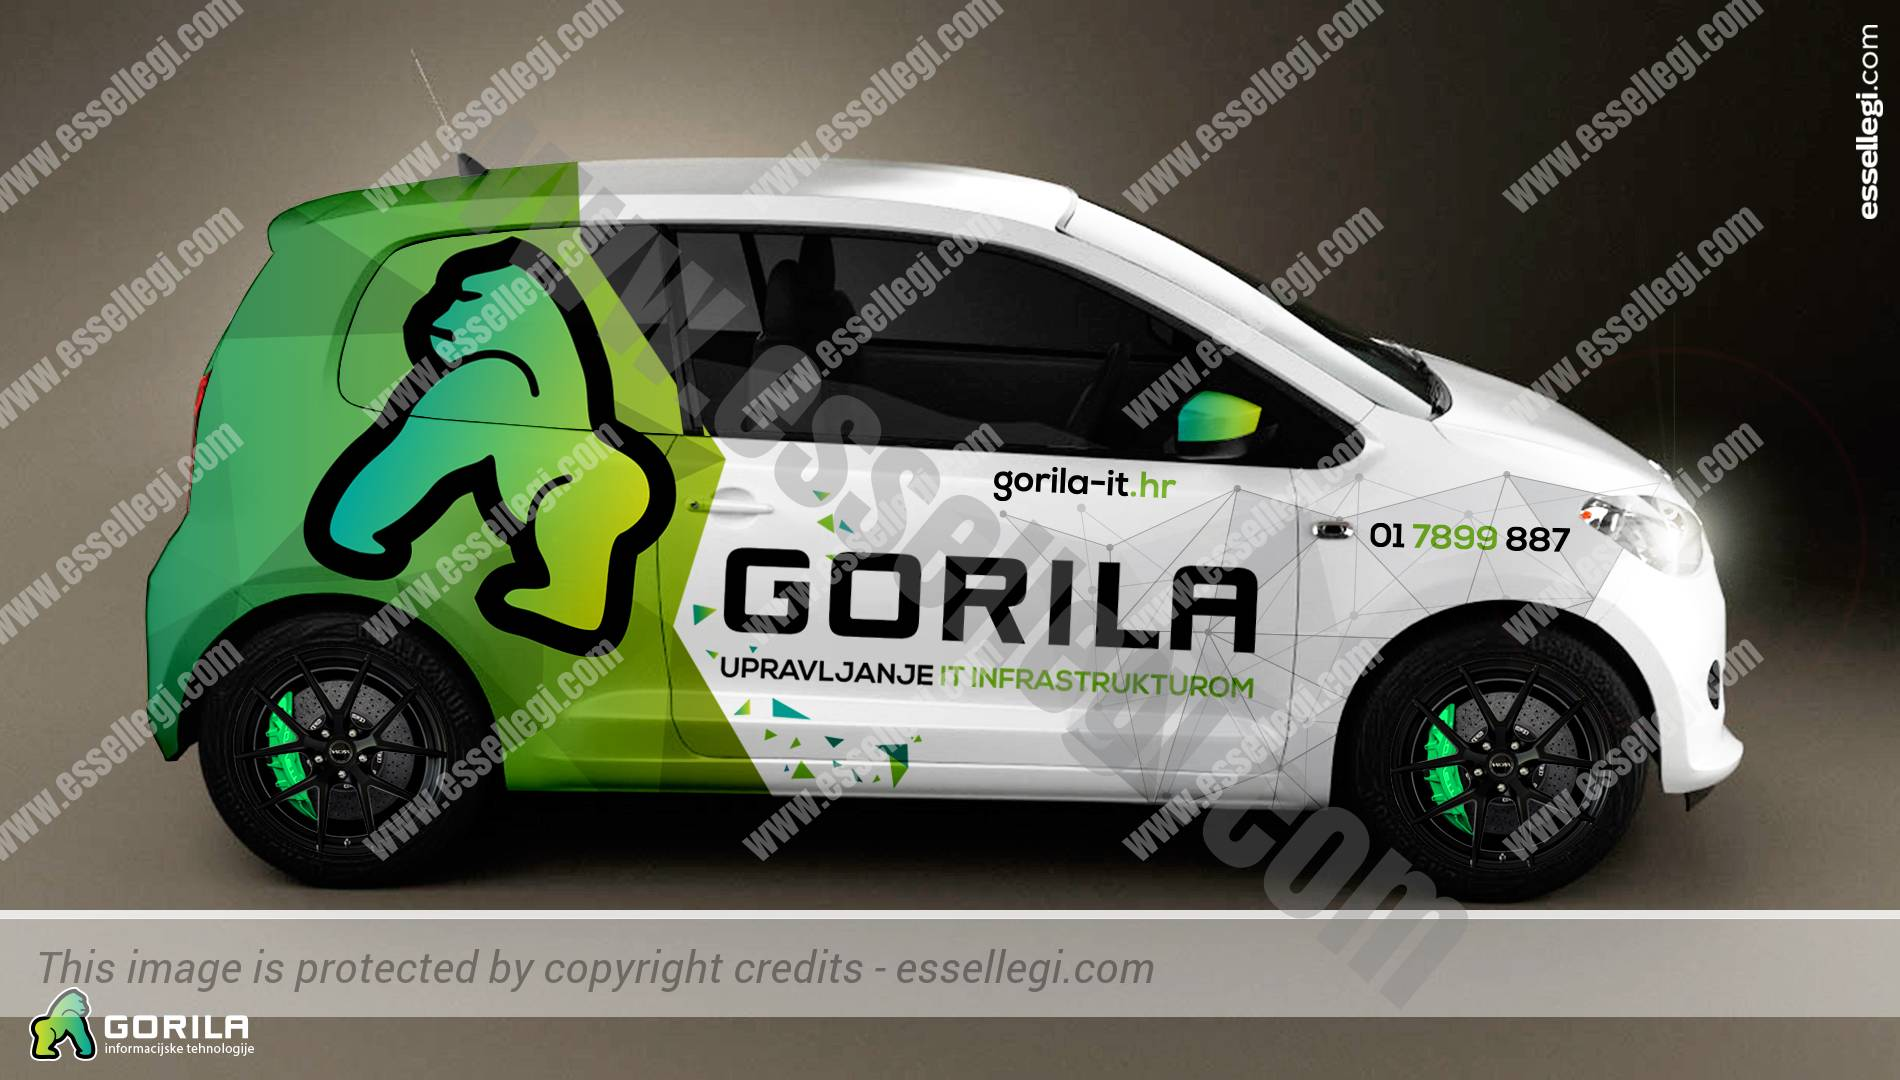 Skoda Citigo | Car Wrap Design by Essellegi. Car Signs, Car Signage, Car Signwriting, Car Wrap Designer, Car Graphic, Custom Vehicle Signage, Car Wrap Design by Essellegi.